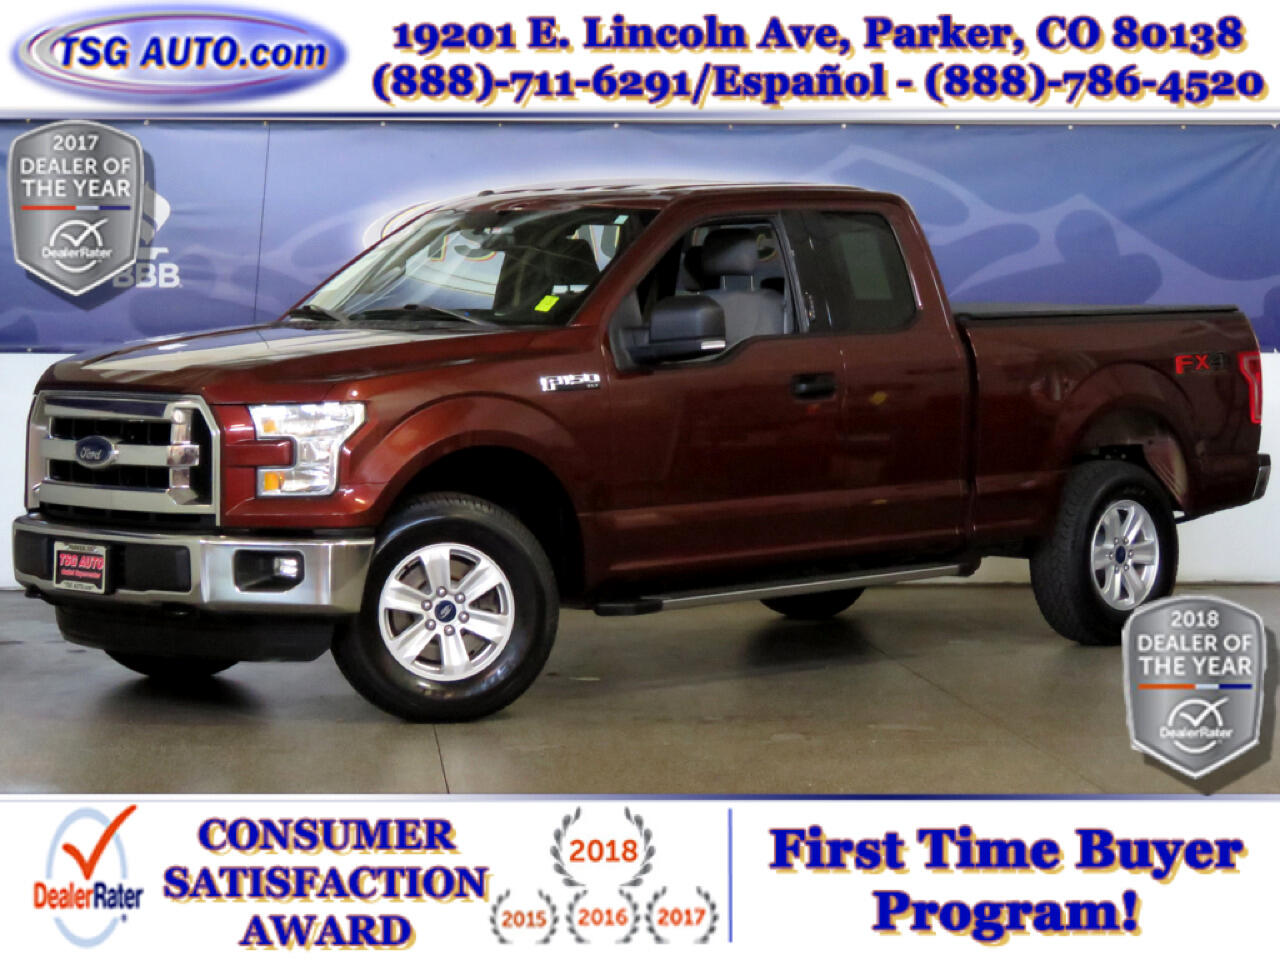 2015 Ford F-150 XLT FX4 Super Cab 5.0L V8 4WD W/Bed Cover